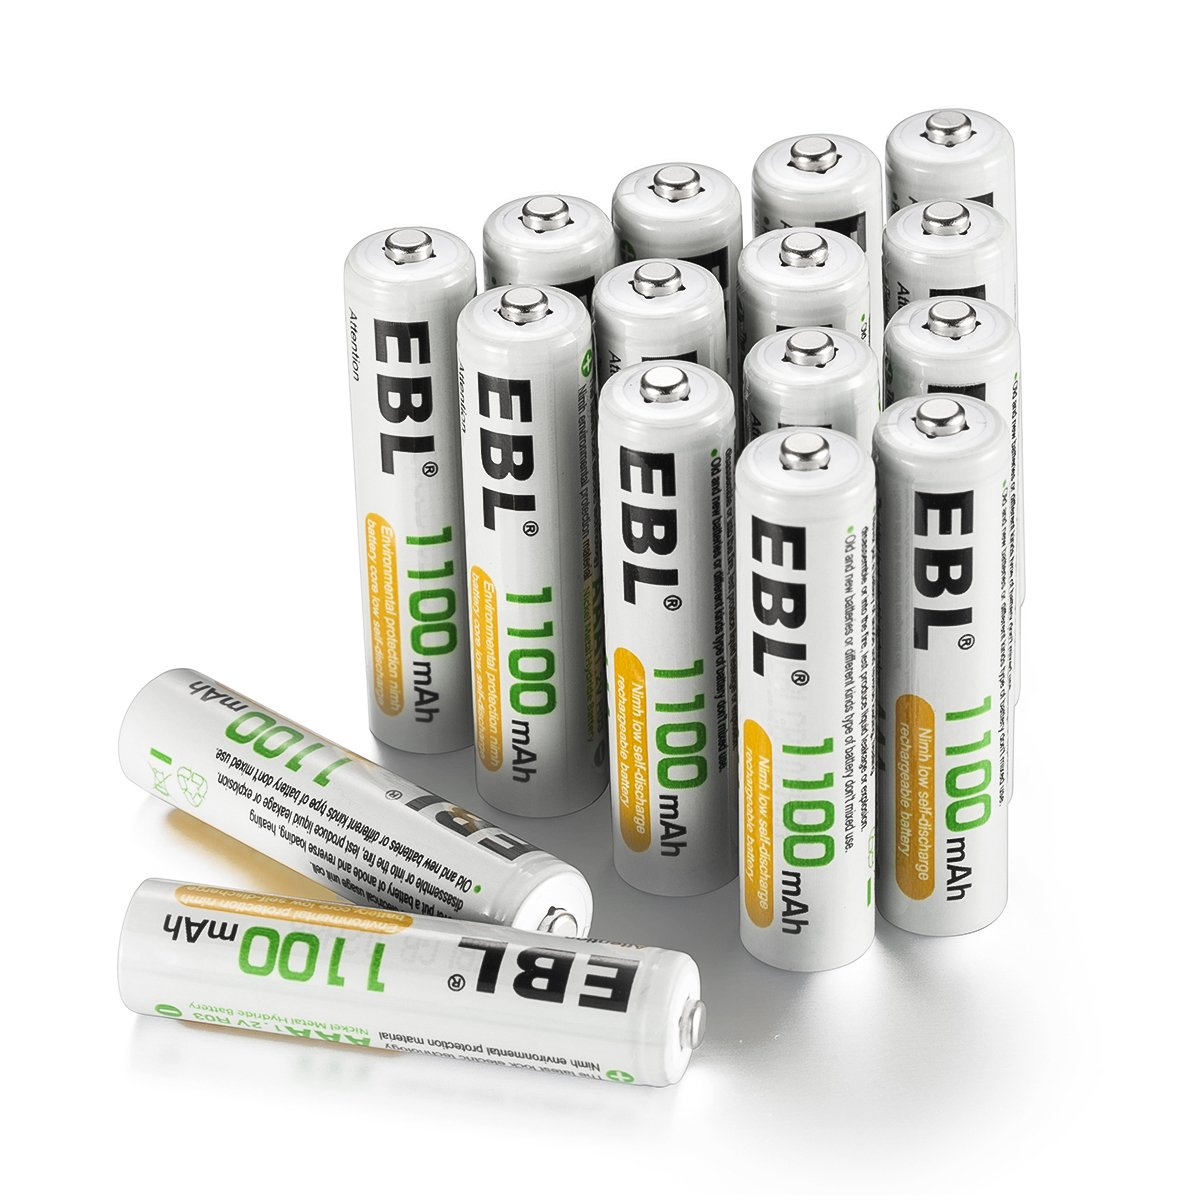 EBL Rechargeable AAA Batteries (16-Counts) Ready2Charge 1100mAh Ni-MH Battery by EBL